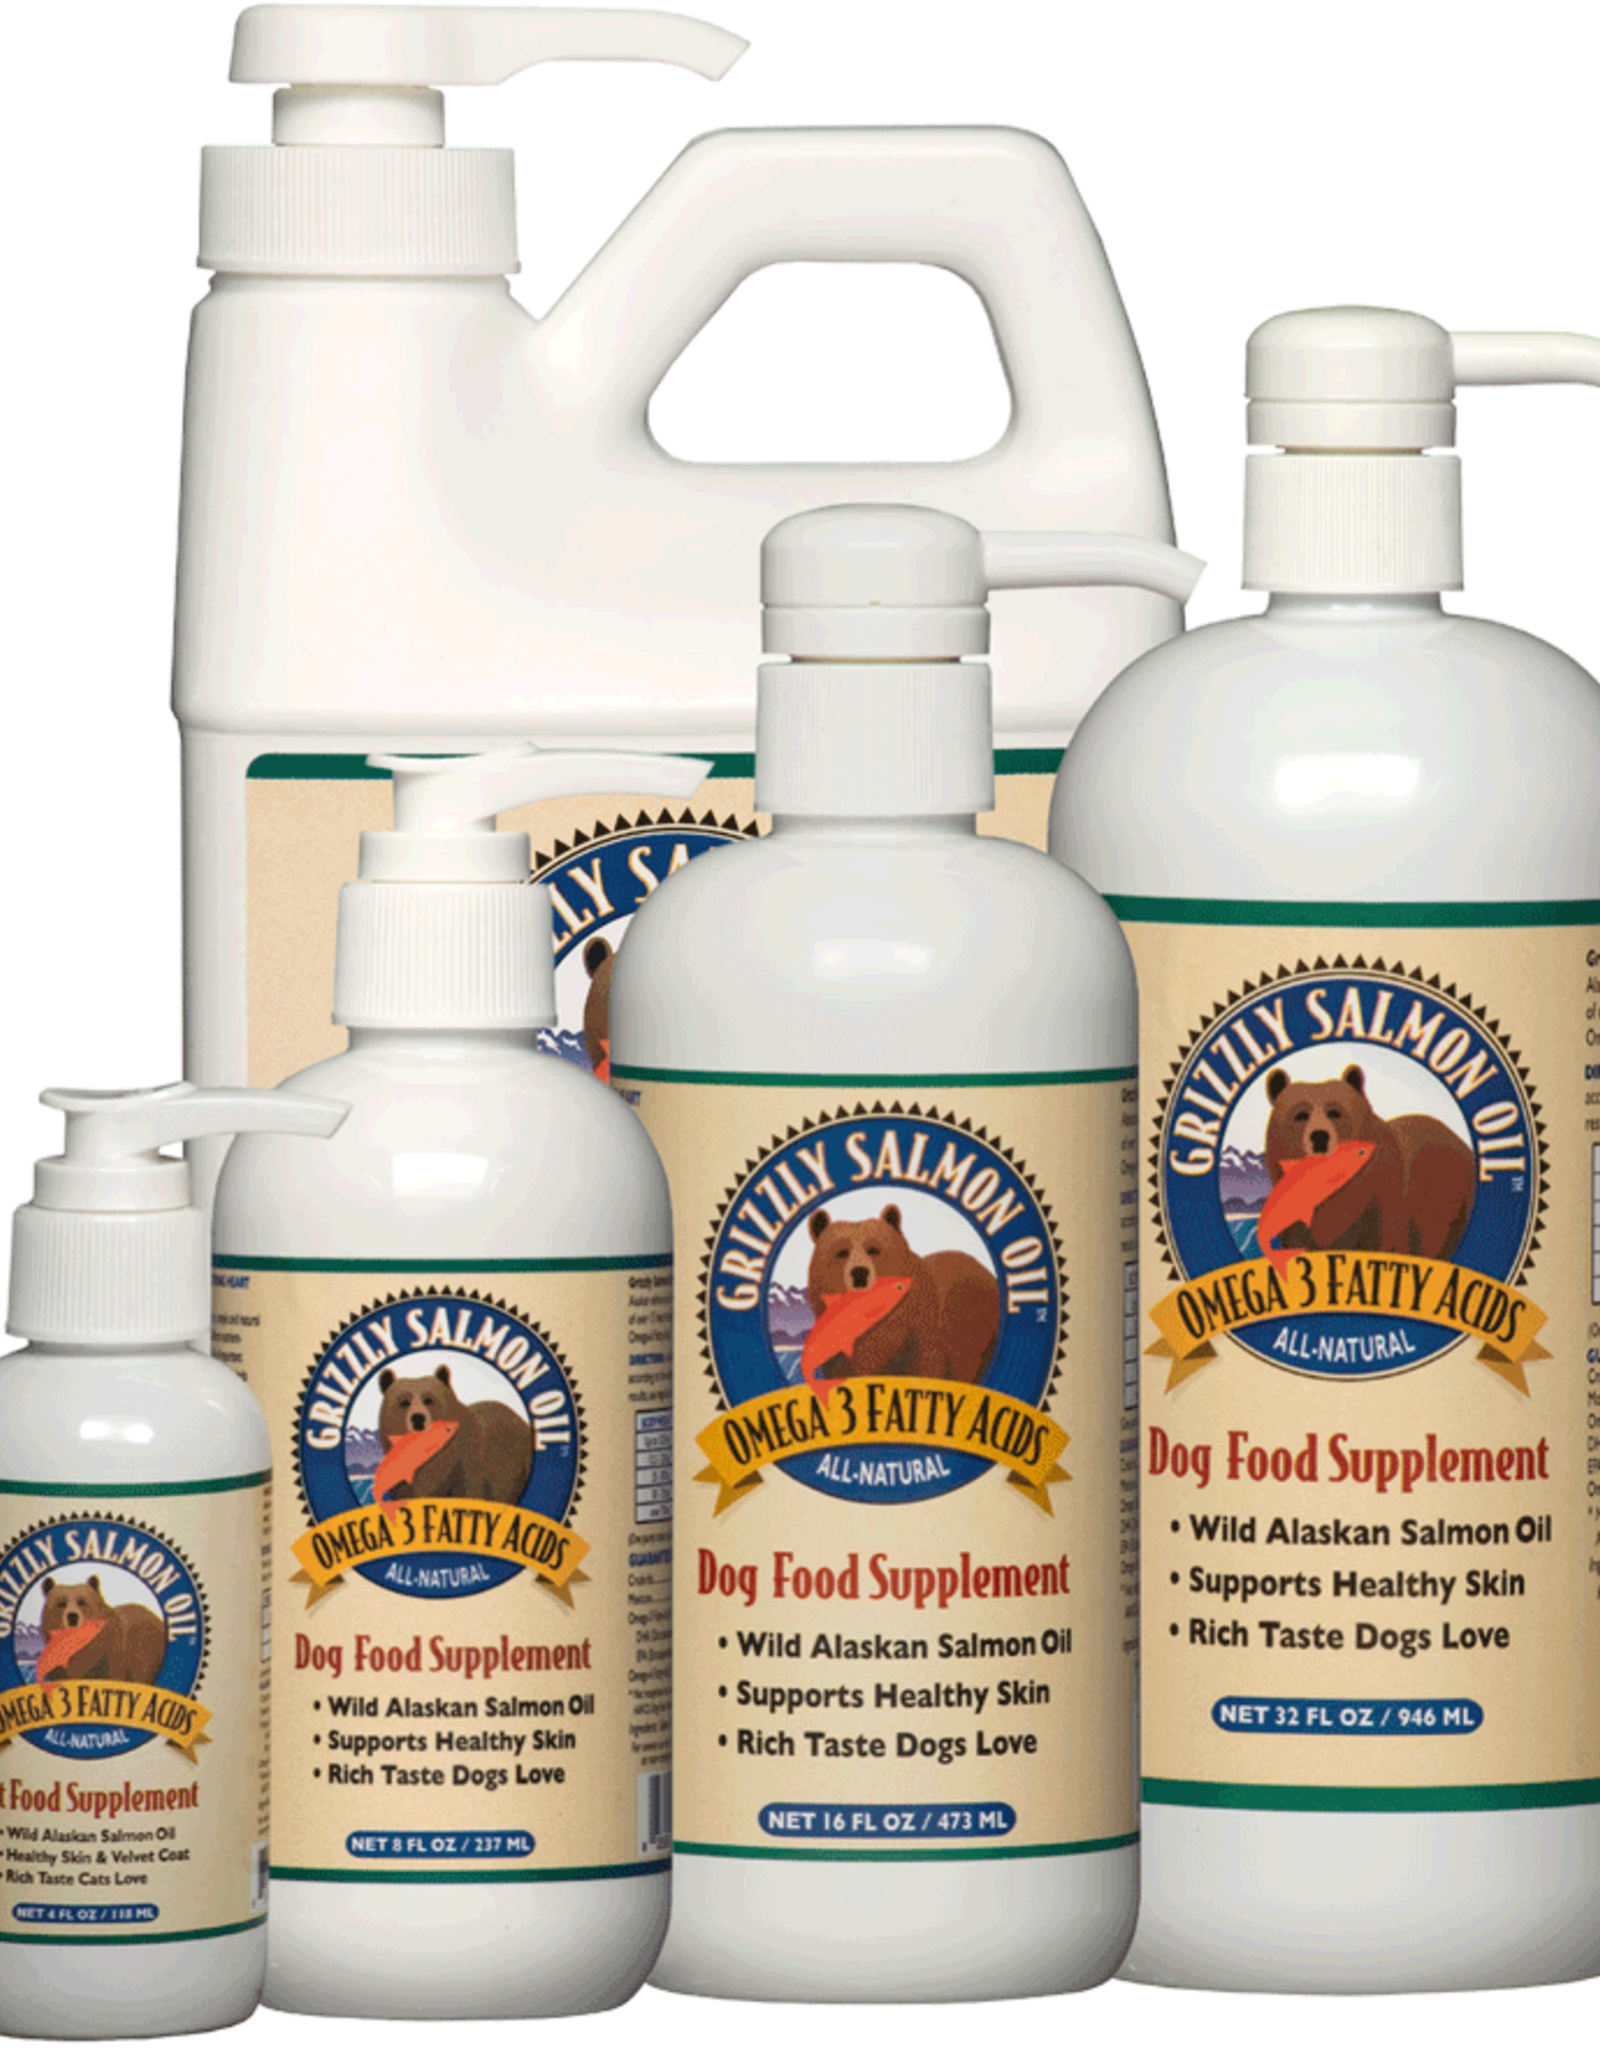 Grizzly Salmon Oil Dogs 32oz